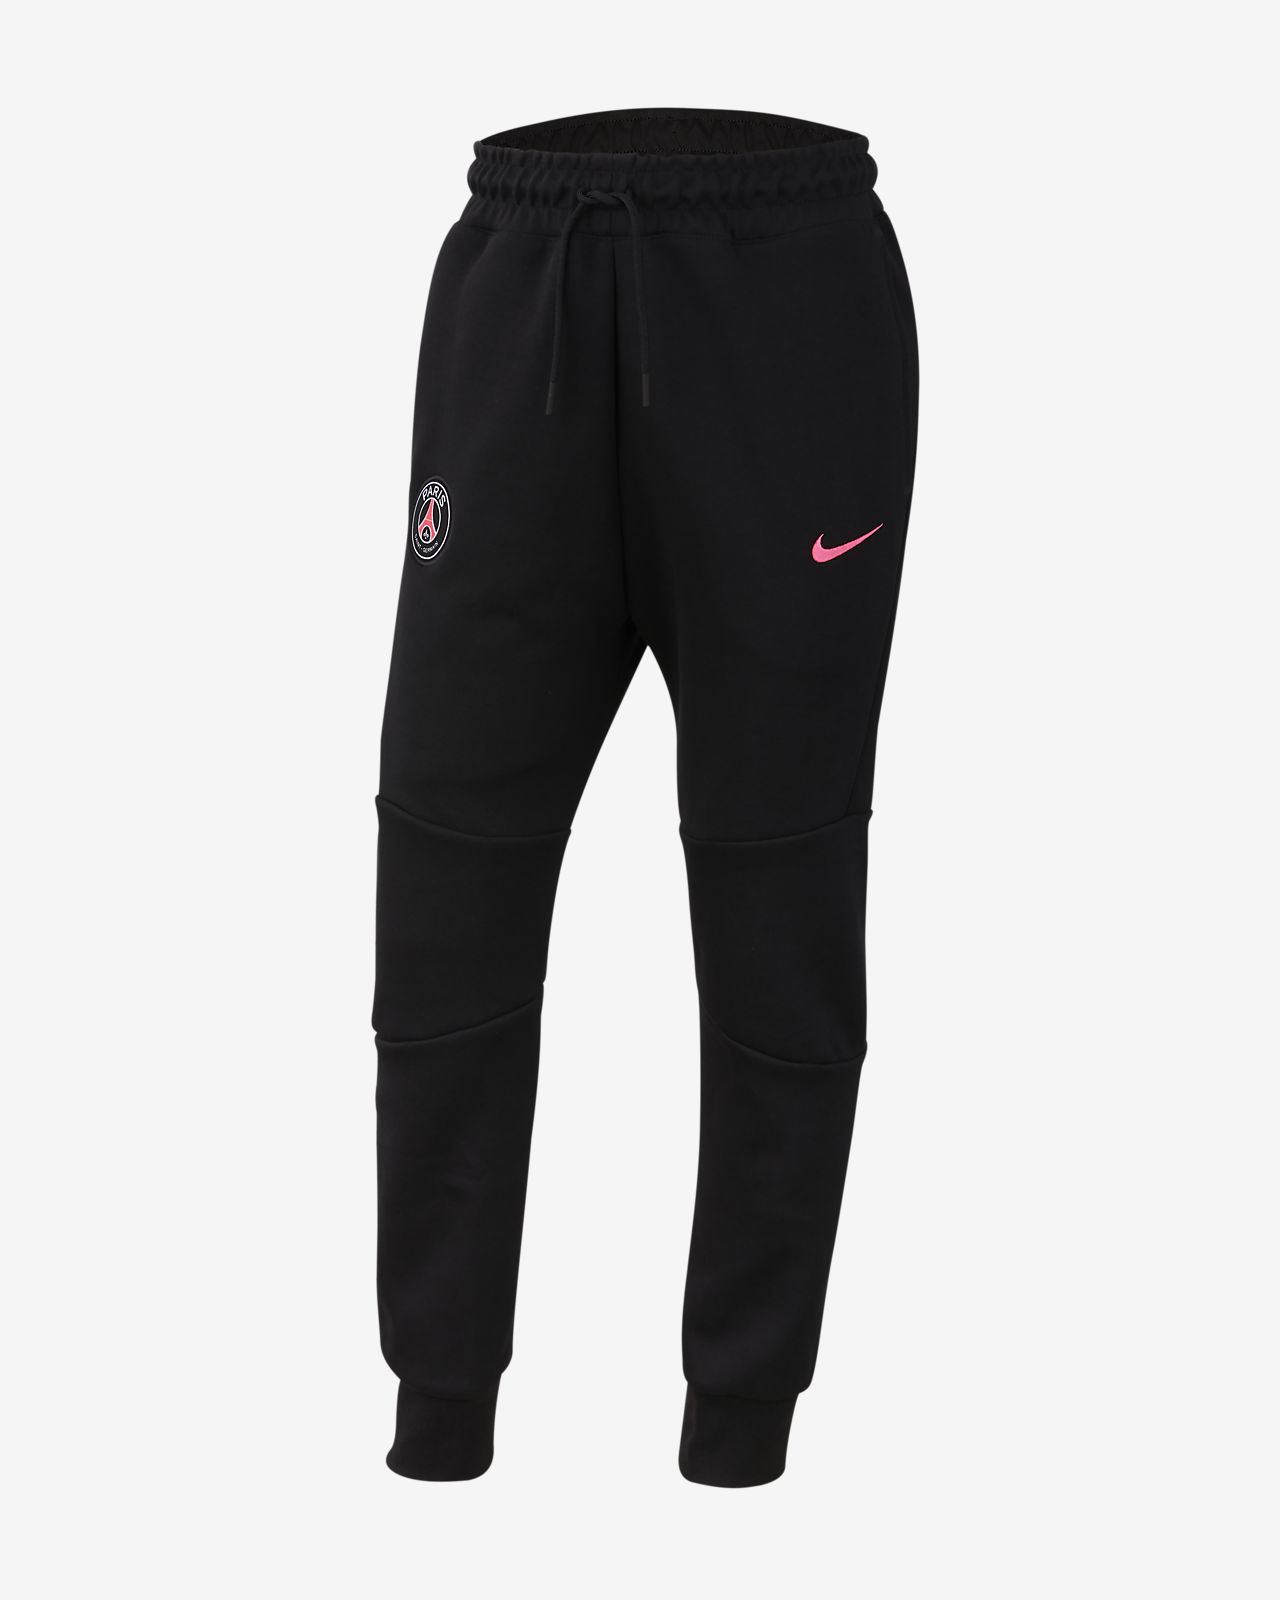 Pantalon Paris Saint-Germain Tech Fleece pour Enfant plus âgé